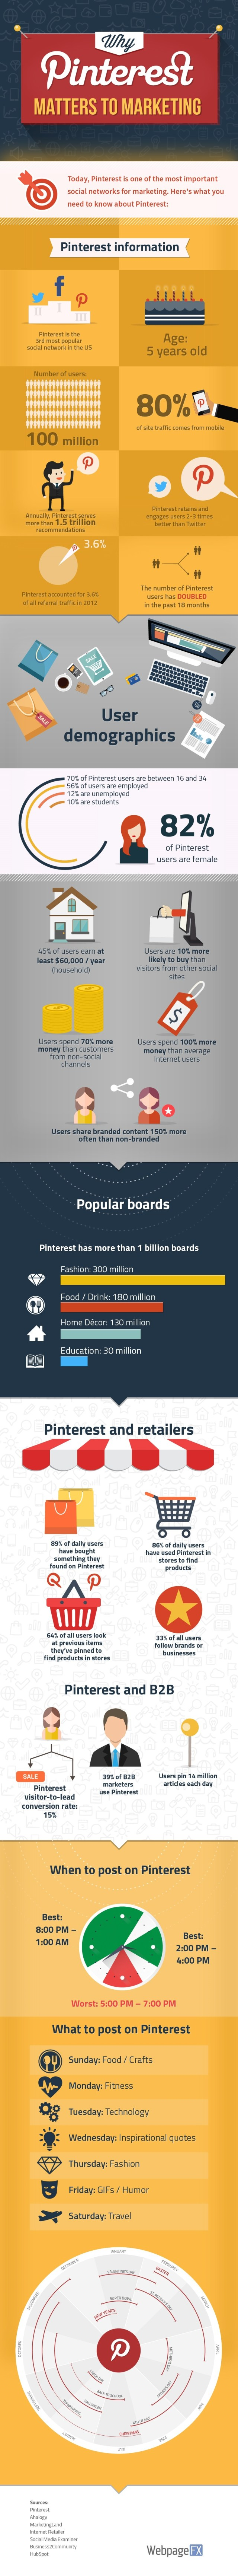 why-pinterest-matters-to-marketing_569e4cca5e934